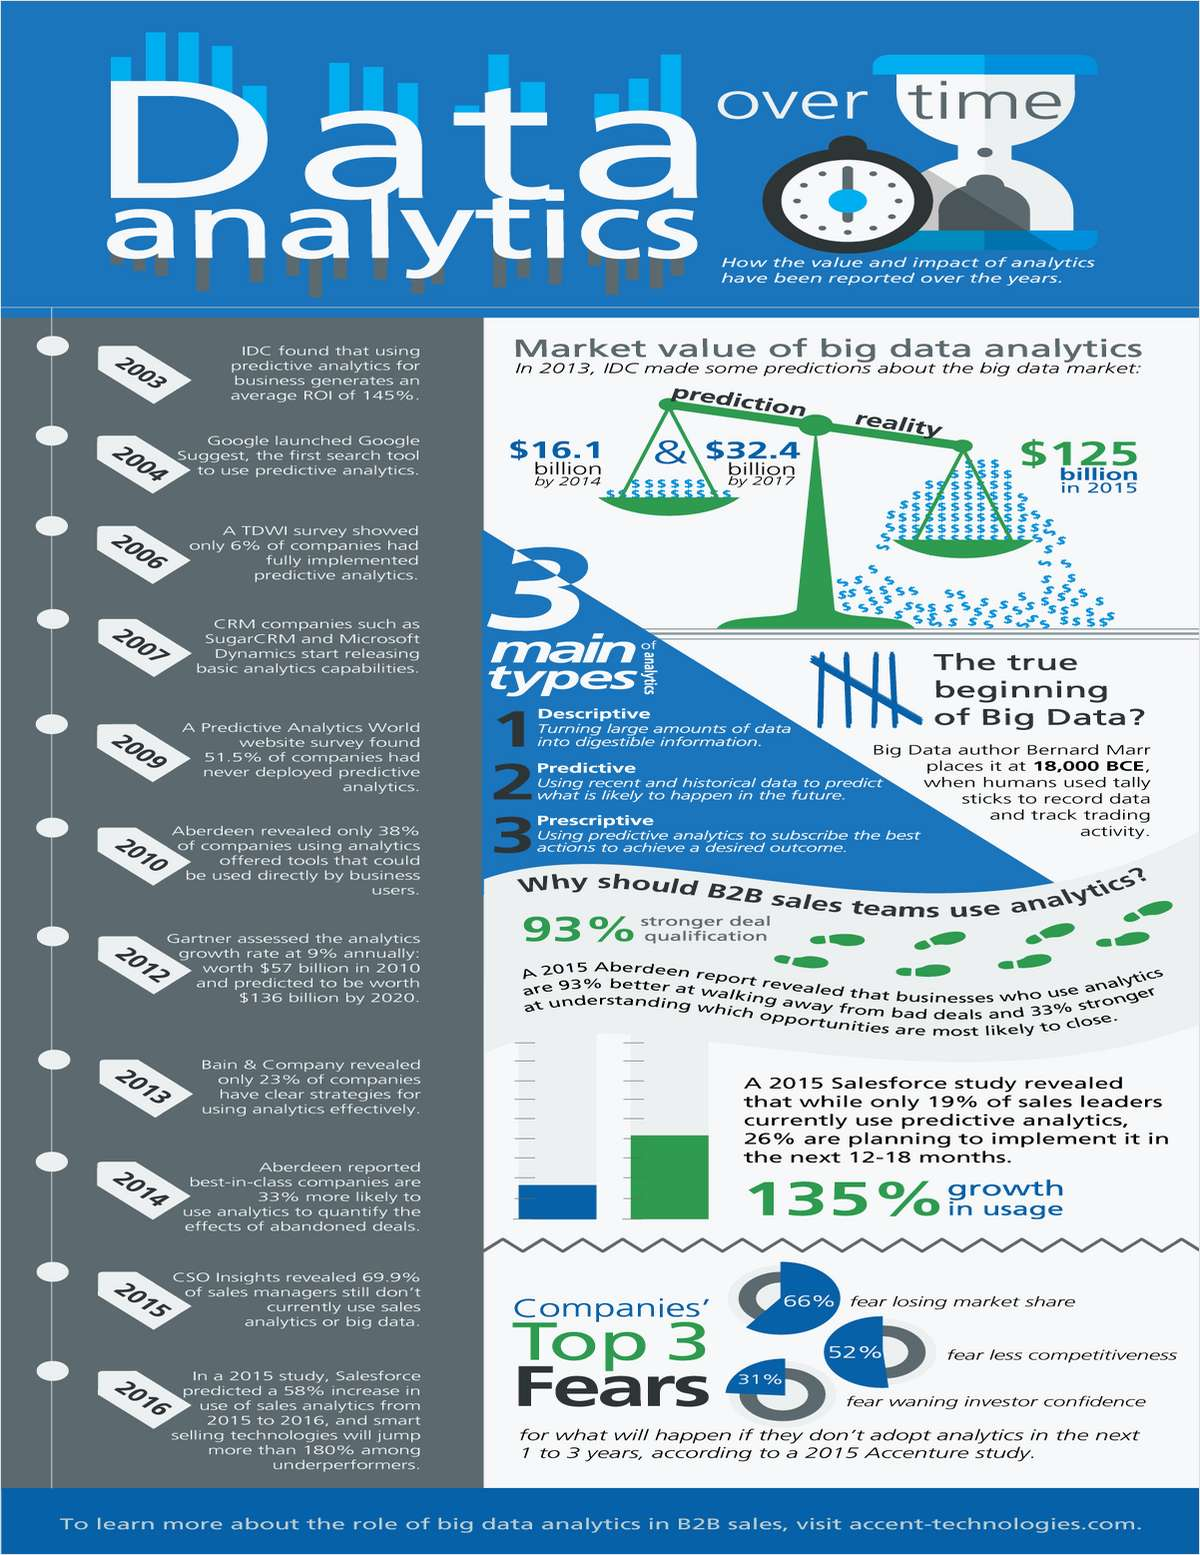 How Business Analytics Has Evolved Over Time [Trend Analysis]